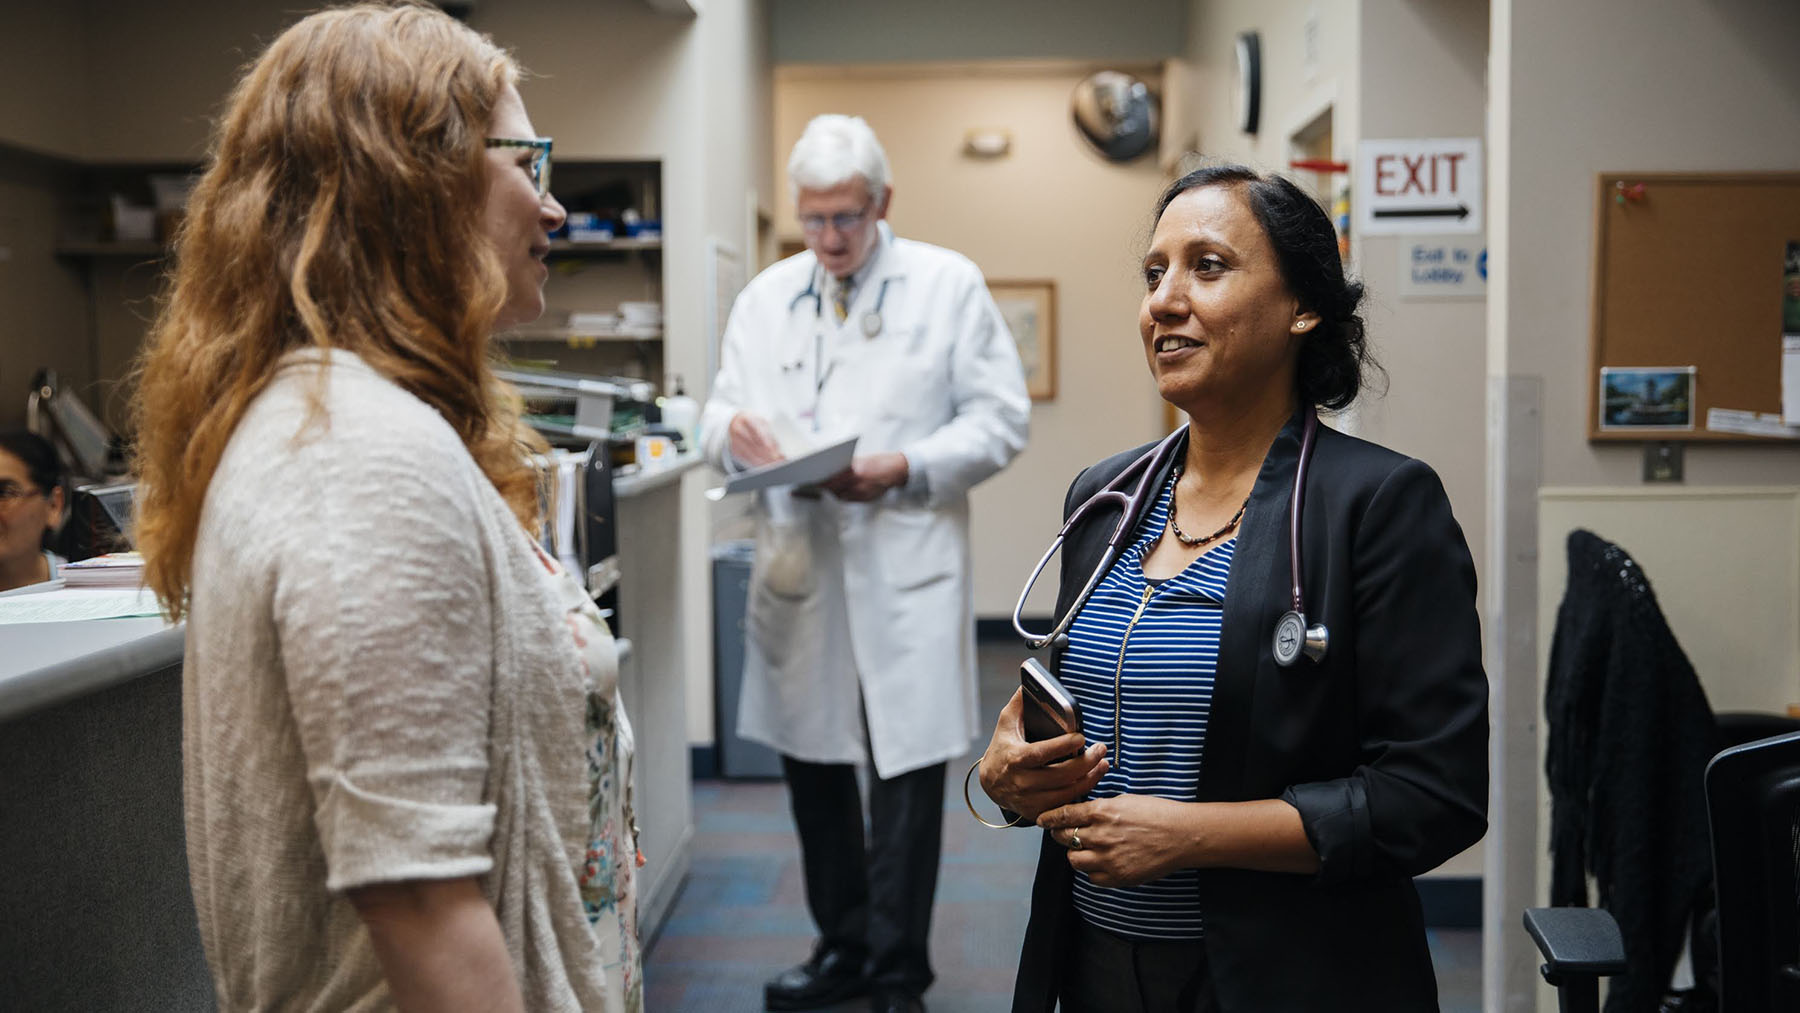 Dr. Roli Dwivedi (right), clinical director, Community University Health Care Center in Minneapolis, speaks with the center's director of pharmacy, Christina Cipolle. The health center works with care teams to treat the whole patient as they work to manage chronic diseases like diabetes. (Photo by Donnie Hedden for Direct Relief)